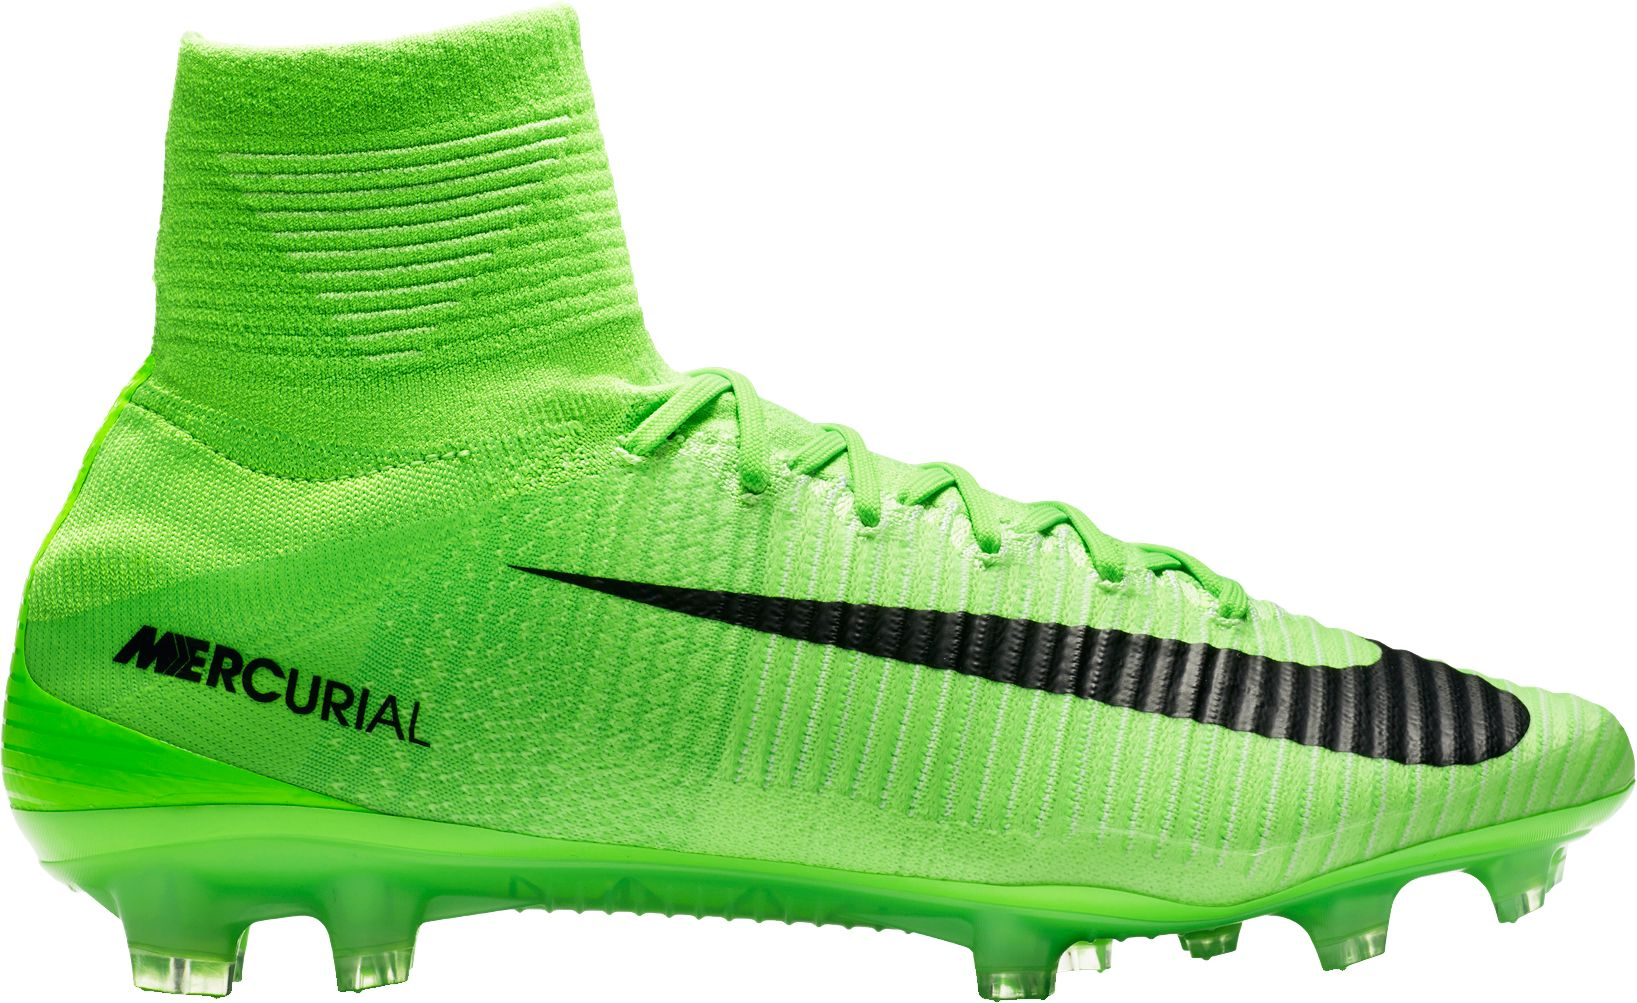 Nike Men\u0027s Mercurial Superfly V FG Soccer Cleats. 0:00. 0:00 / 0:00.  noImageFound ???